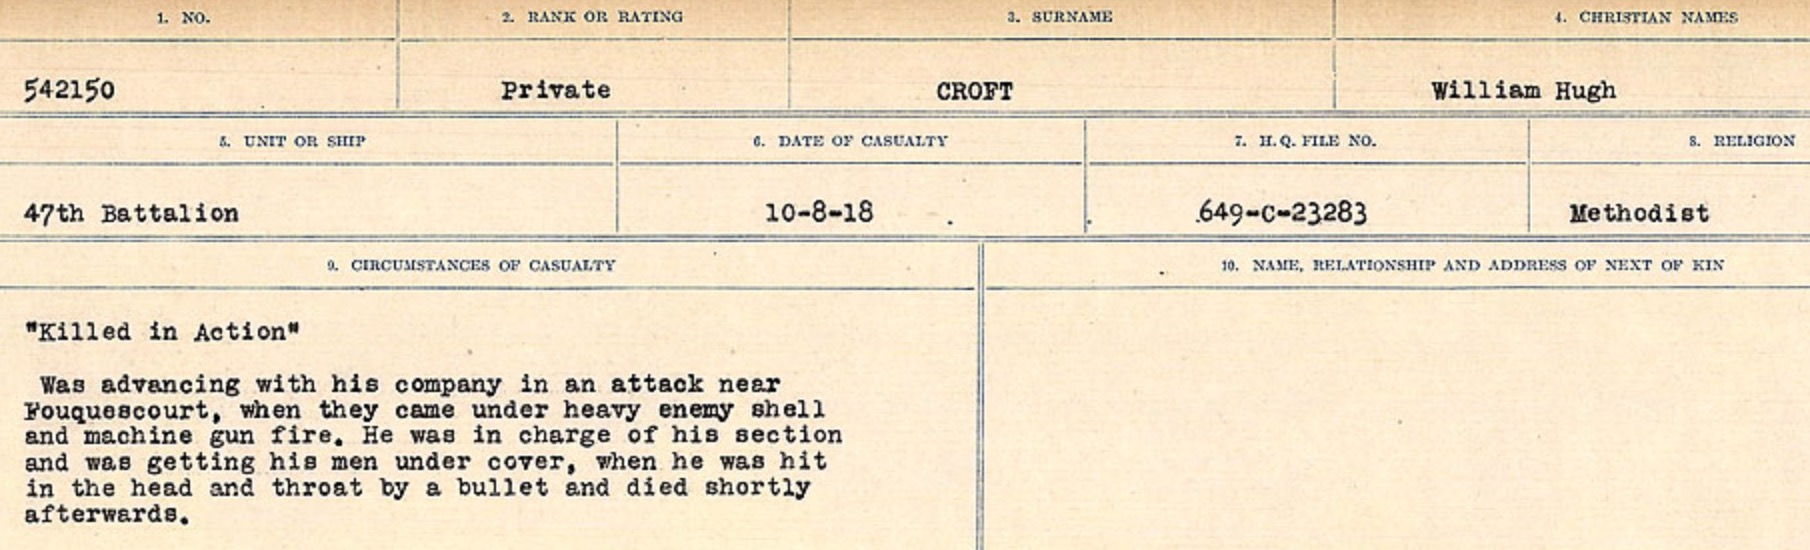 Circumstances of death registers– Source: Library and Archives Canada. CIRCUMSTANCES OF DEATH REGISTERS, FIRST WORLD WAR Surnames: CRABB TO CROSSLAND Microform Sequence 24; Volume Number 31829_B016733. Reference RG150, 1992-93/314, 168. Page 621 of 788.